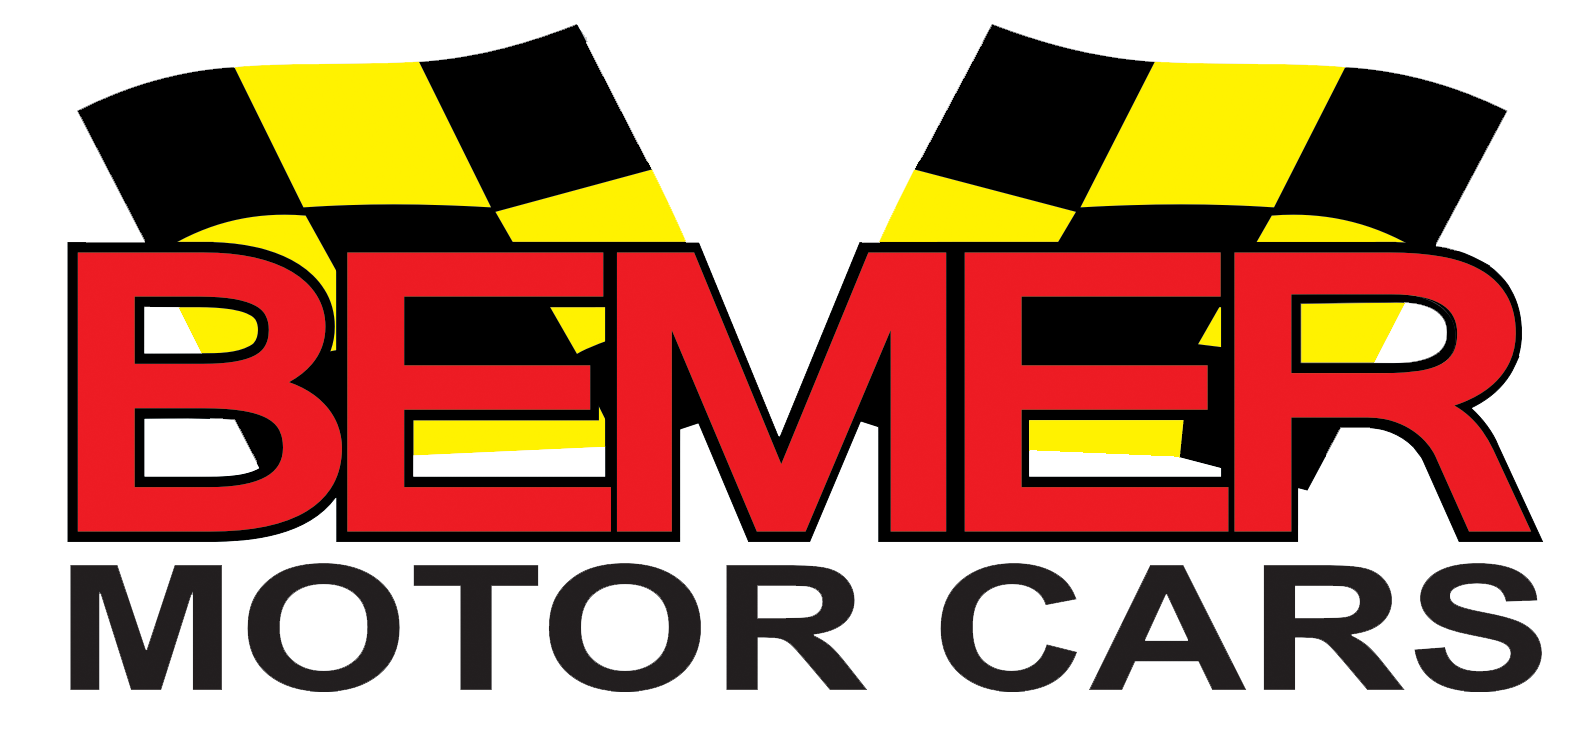 Bemer Motor Cars Houston Tx Read Consumer Reviews Browse Used And New Cars For Sale